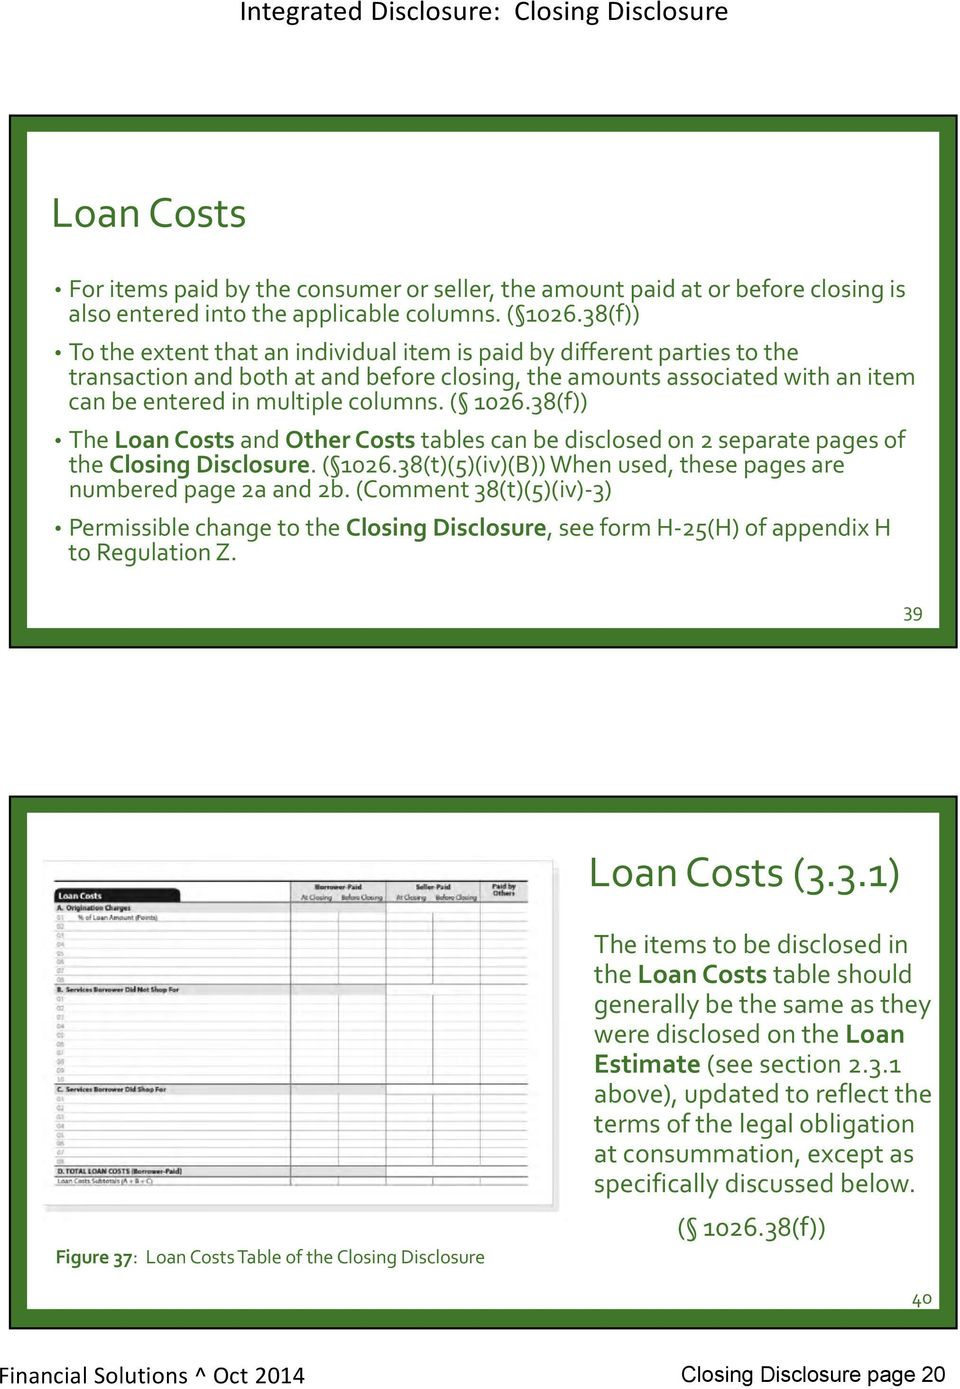 ( 1026.38(f)) The Loan Costs and Other Costs tables can be disclosed on 2 separate pages of the Closing Disclosure. ( 1026.38(t)(5)(iv)(B)) When used, these pages are numbered page 2a and 2b.